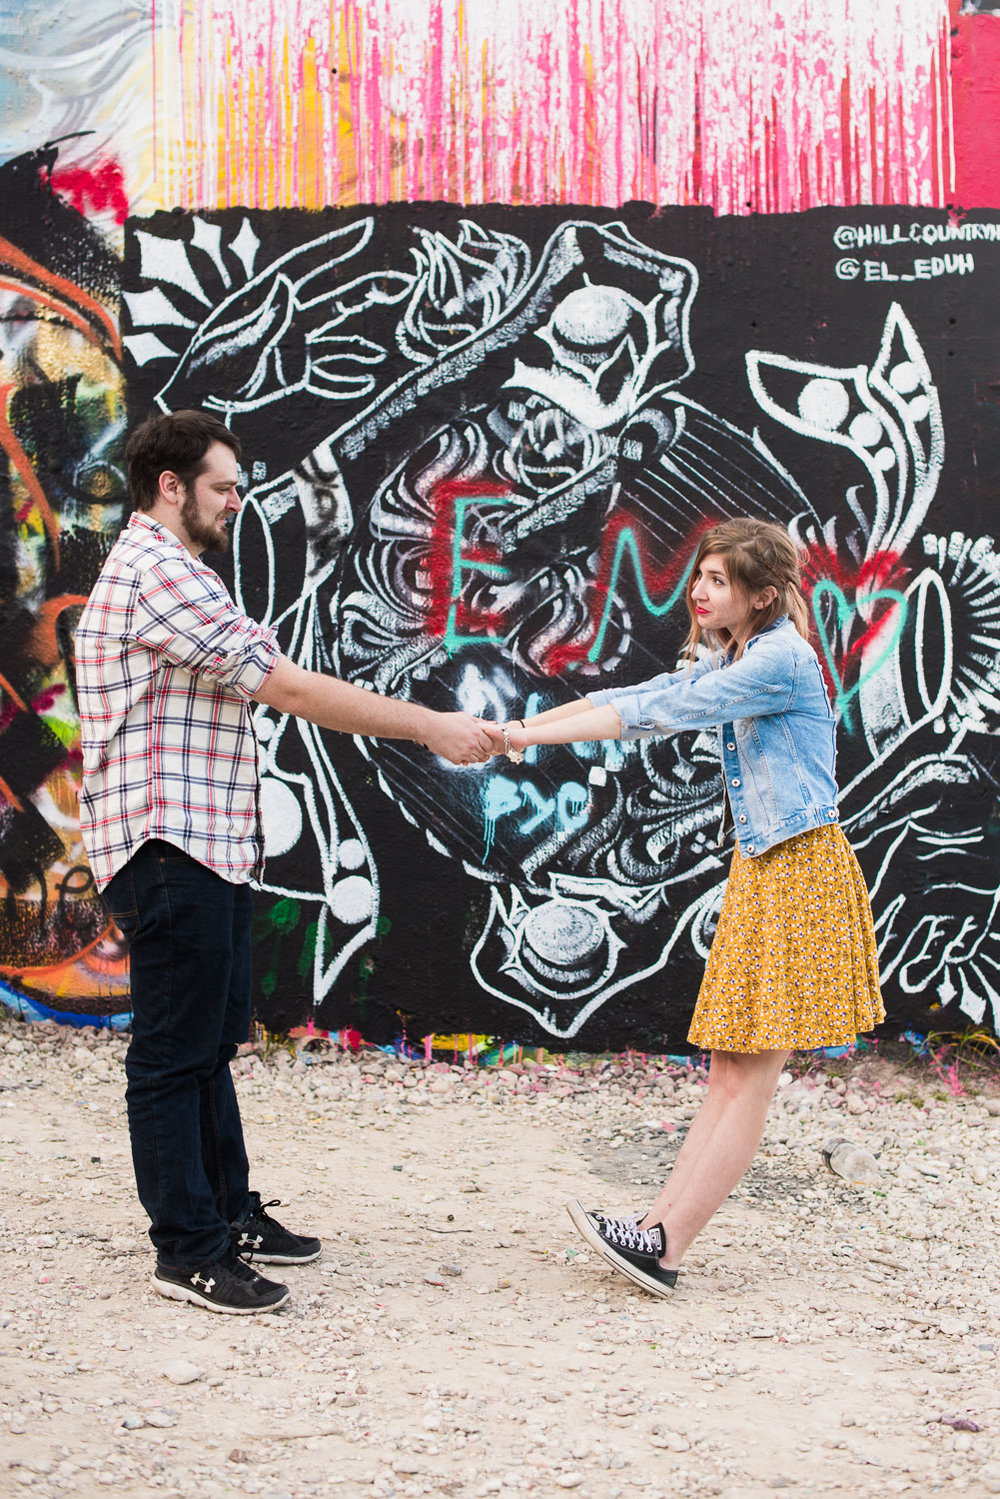 Austin Engagement Session at Hope Graffiti Park -5.jpg